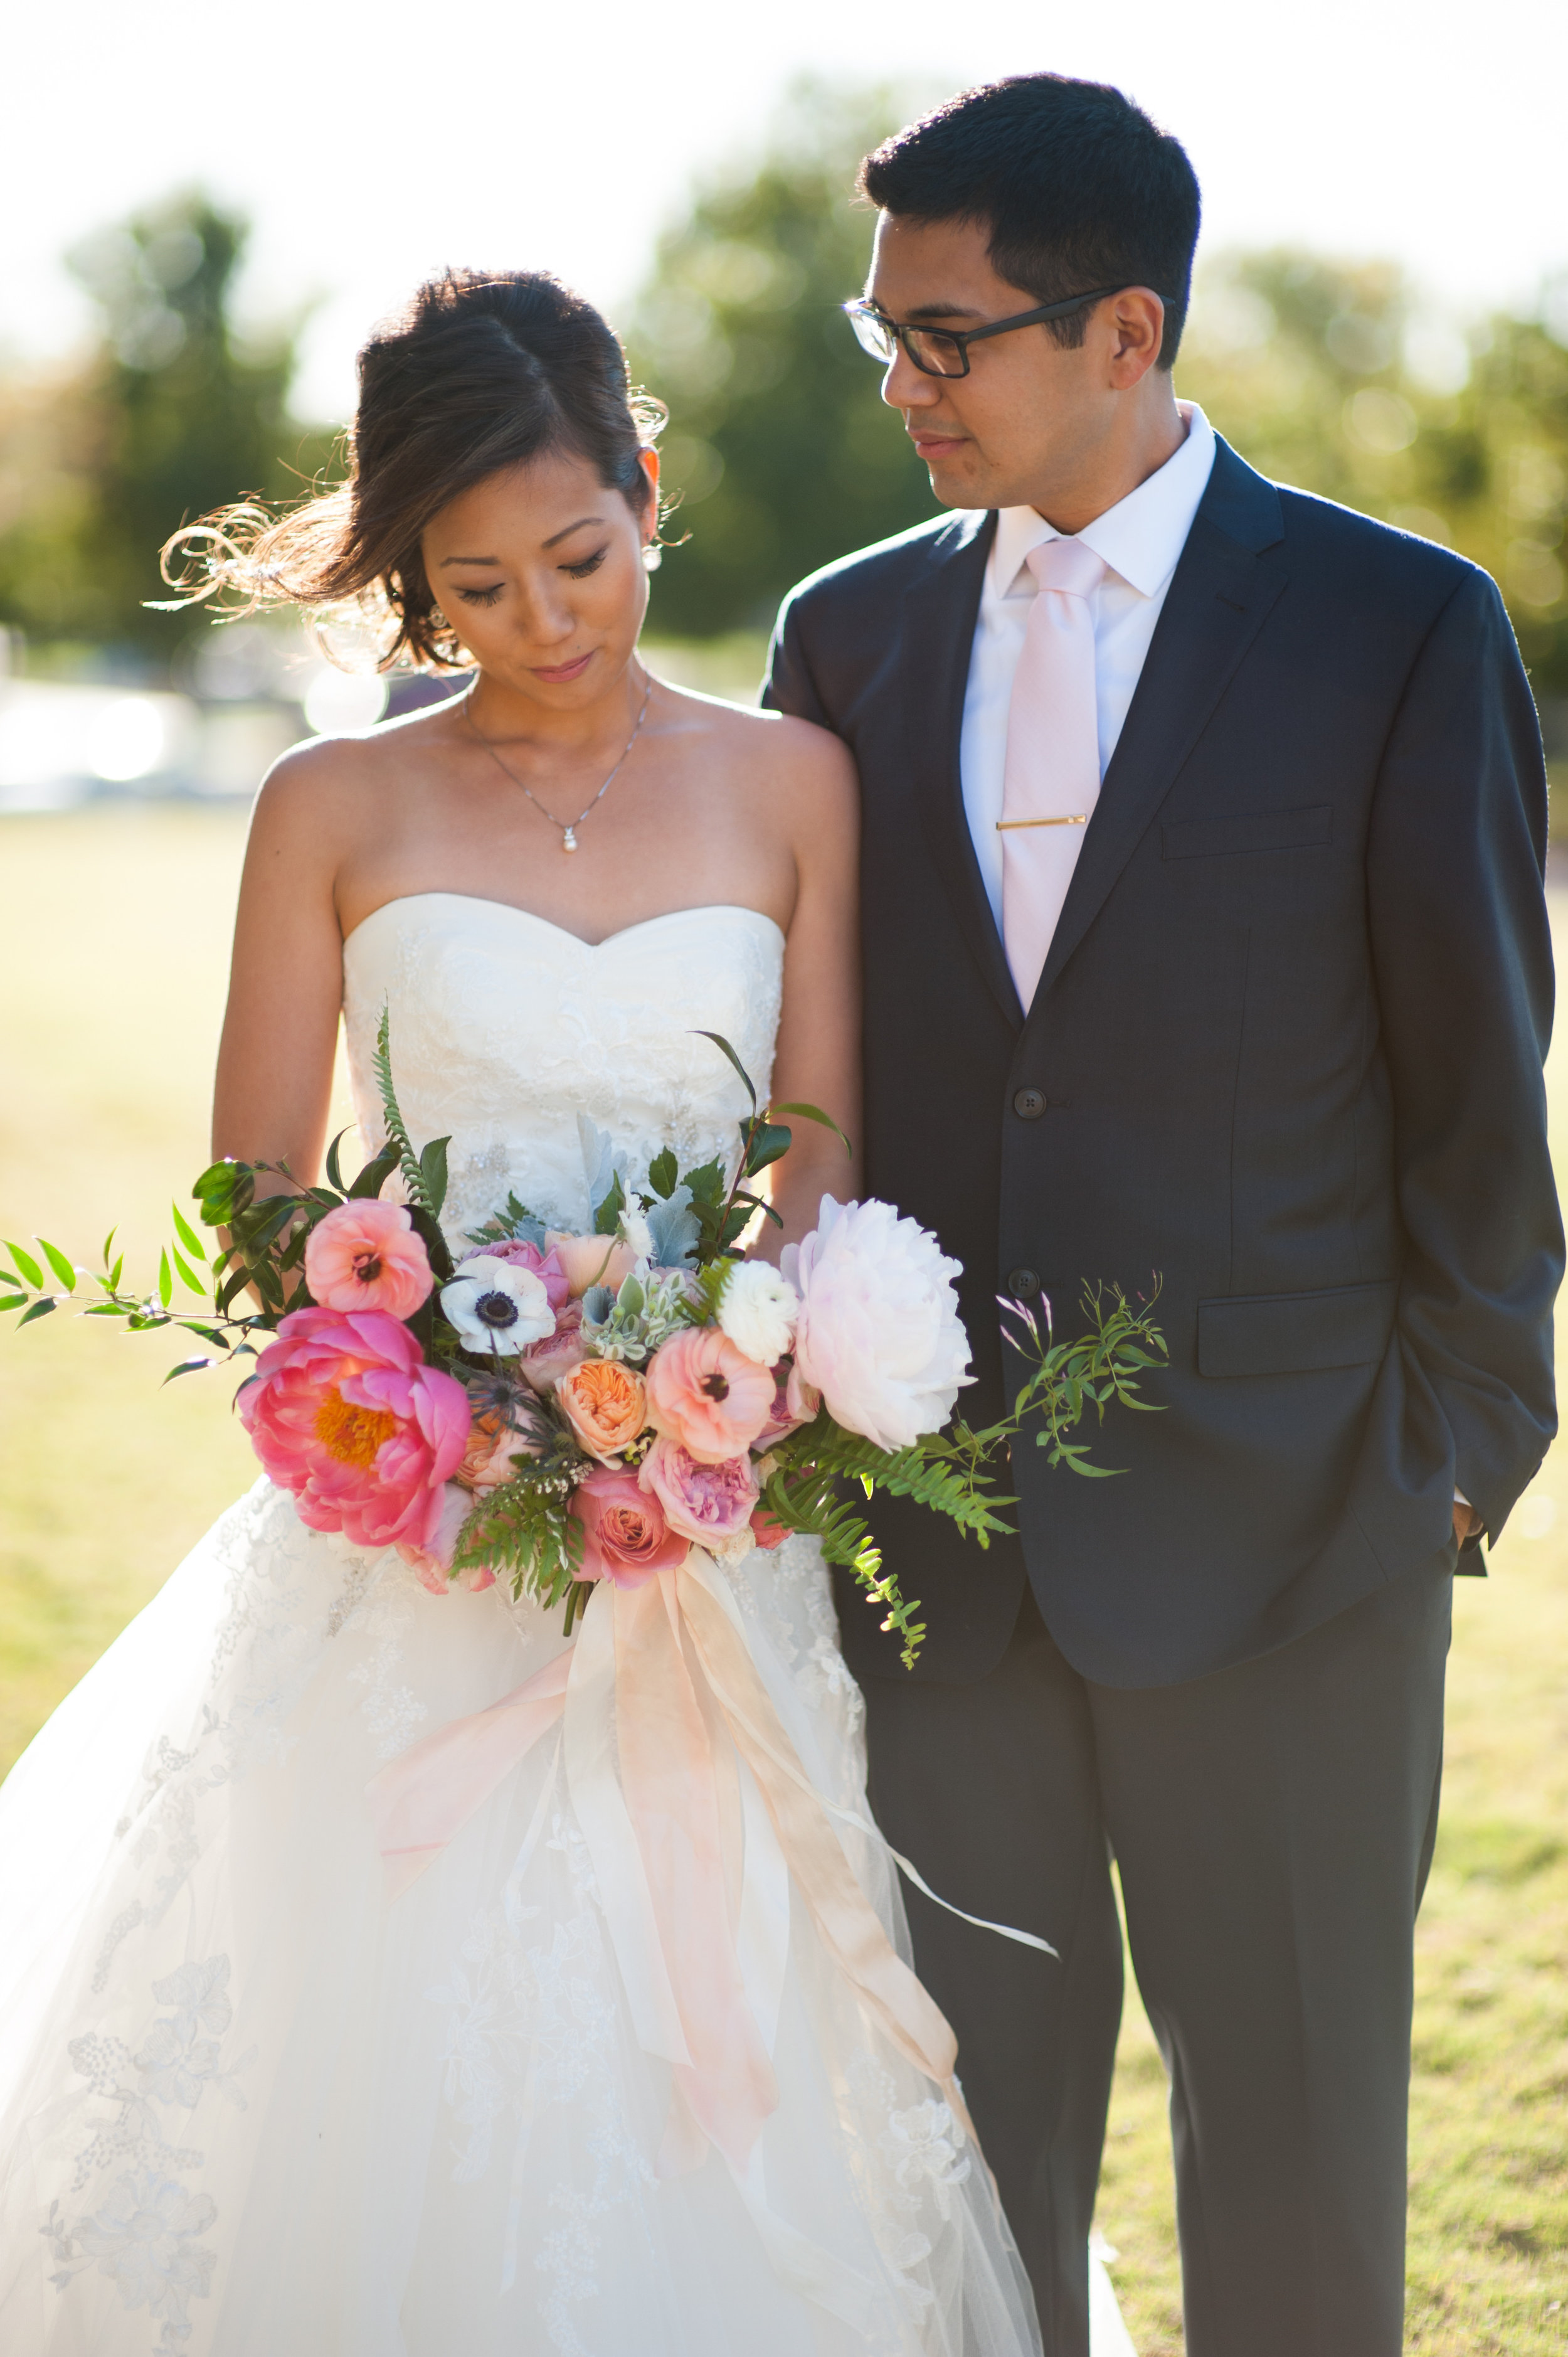 silk-bridal-bouquet-recreation-stunner.jpg